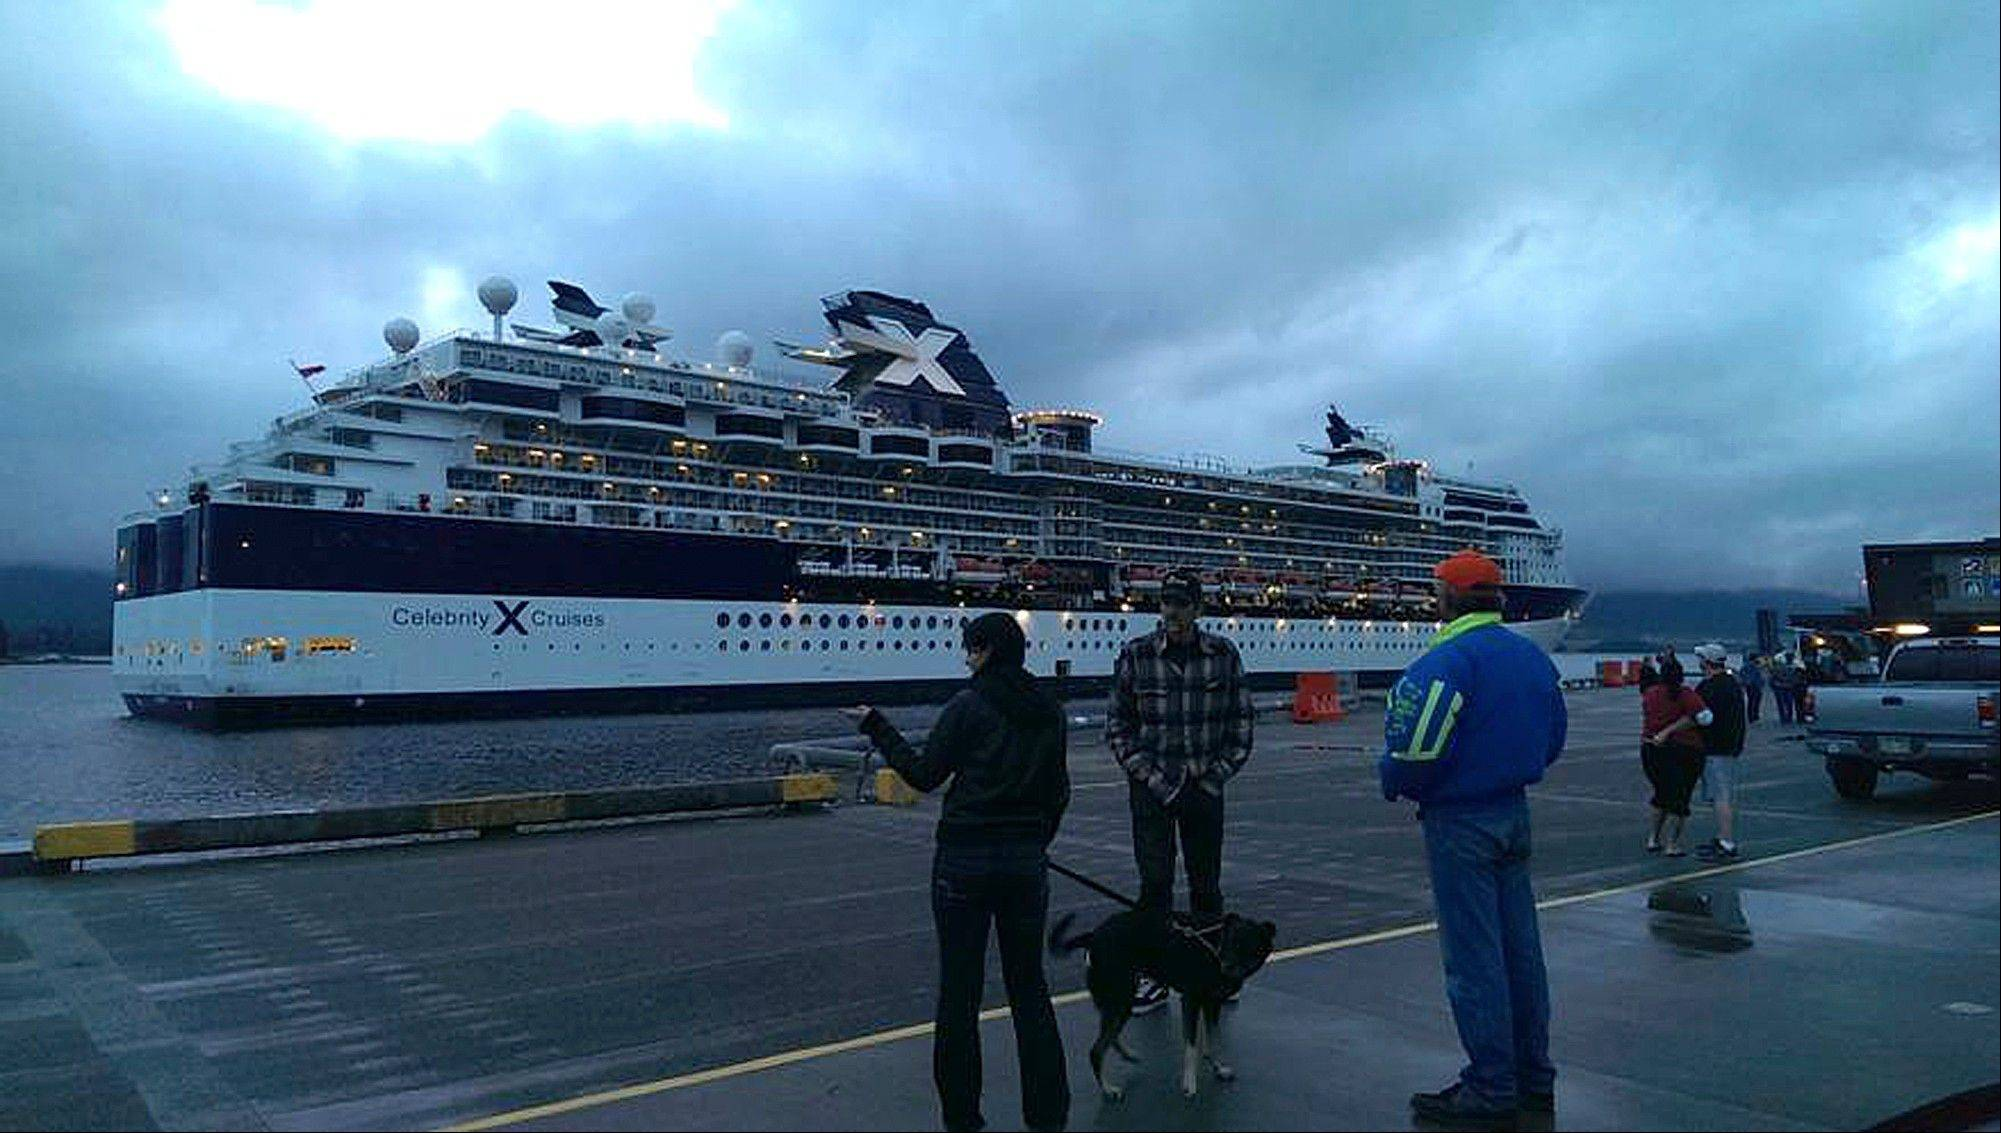 A mechanical problem aboard the 965-foot Millennium forced Celebrity Cruises to cancel six Alaska sailings.